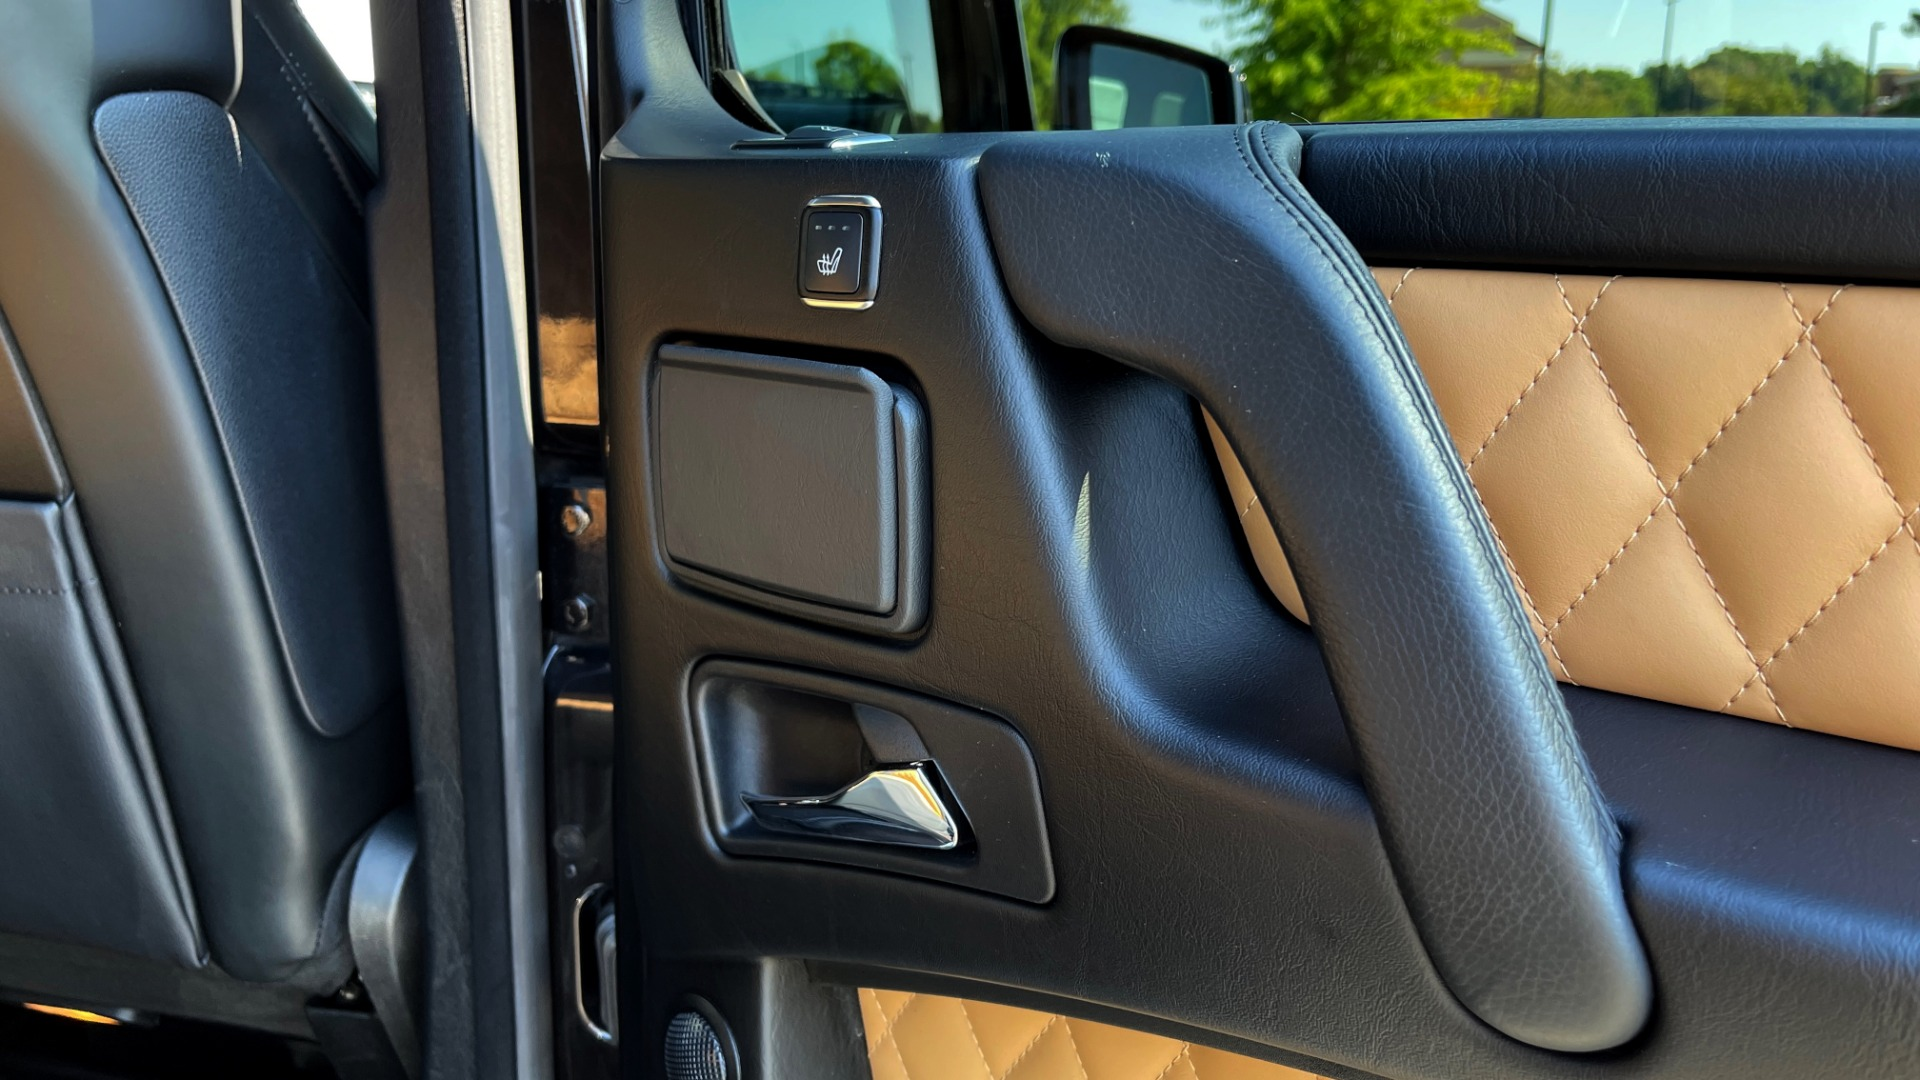 Used 2014 Mercedes-Benz G-CLASS G 63 AMG / DISGNO LEATHER / NAV / SUNROOF / REARVIEW for sale $88,999 at Formula Imports in Charlotte NC 28227 56